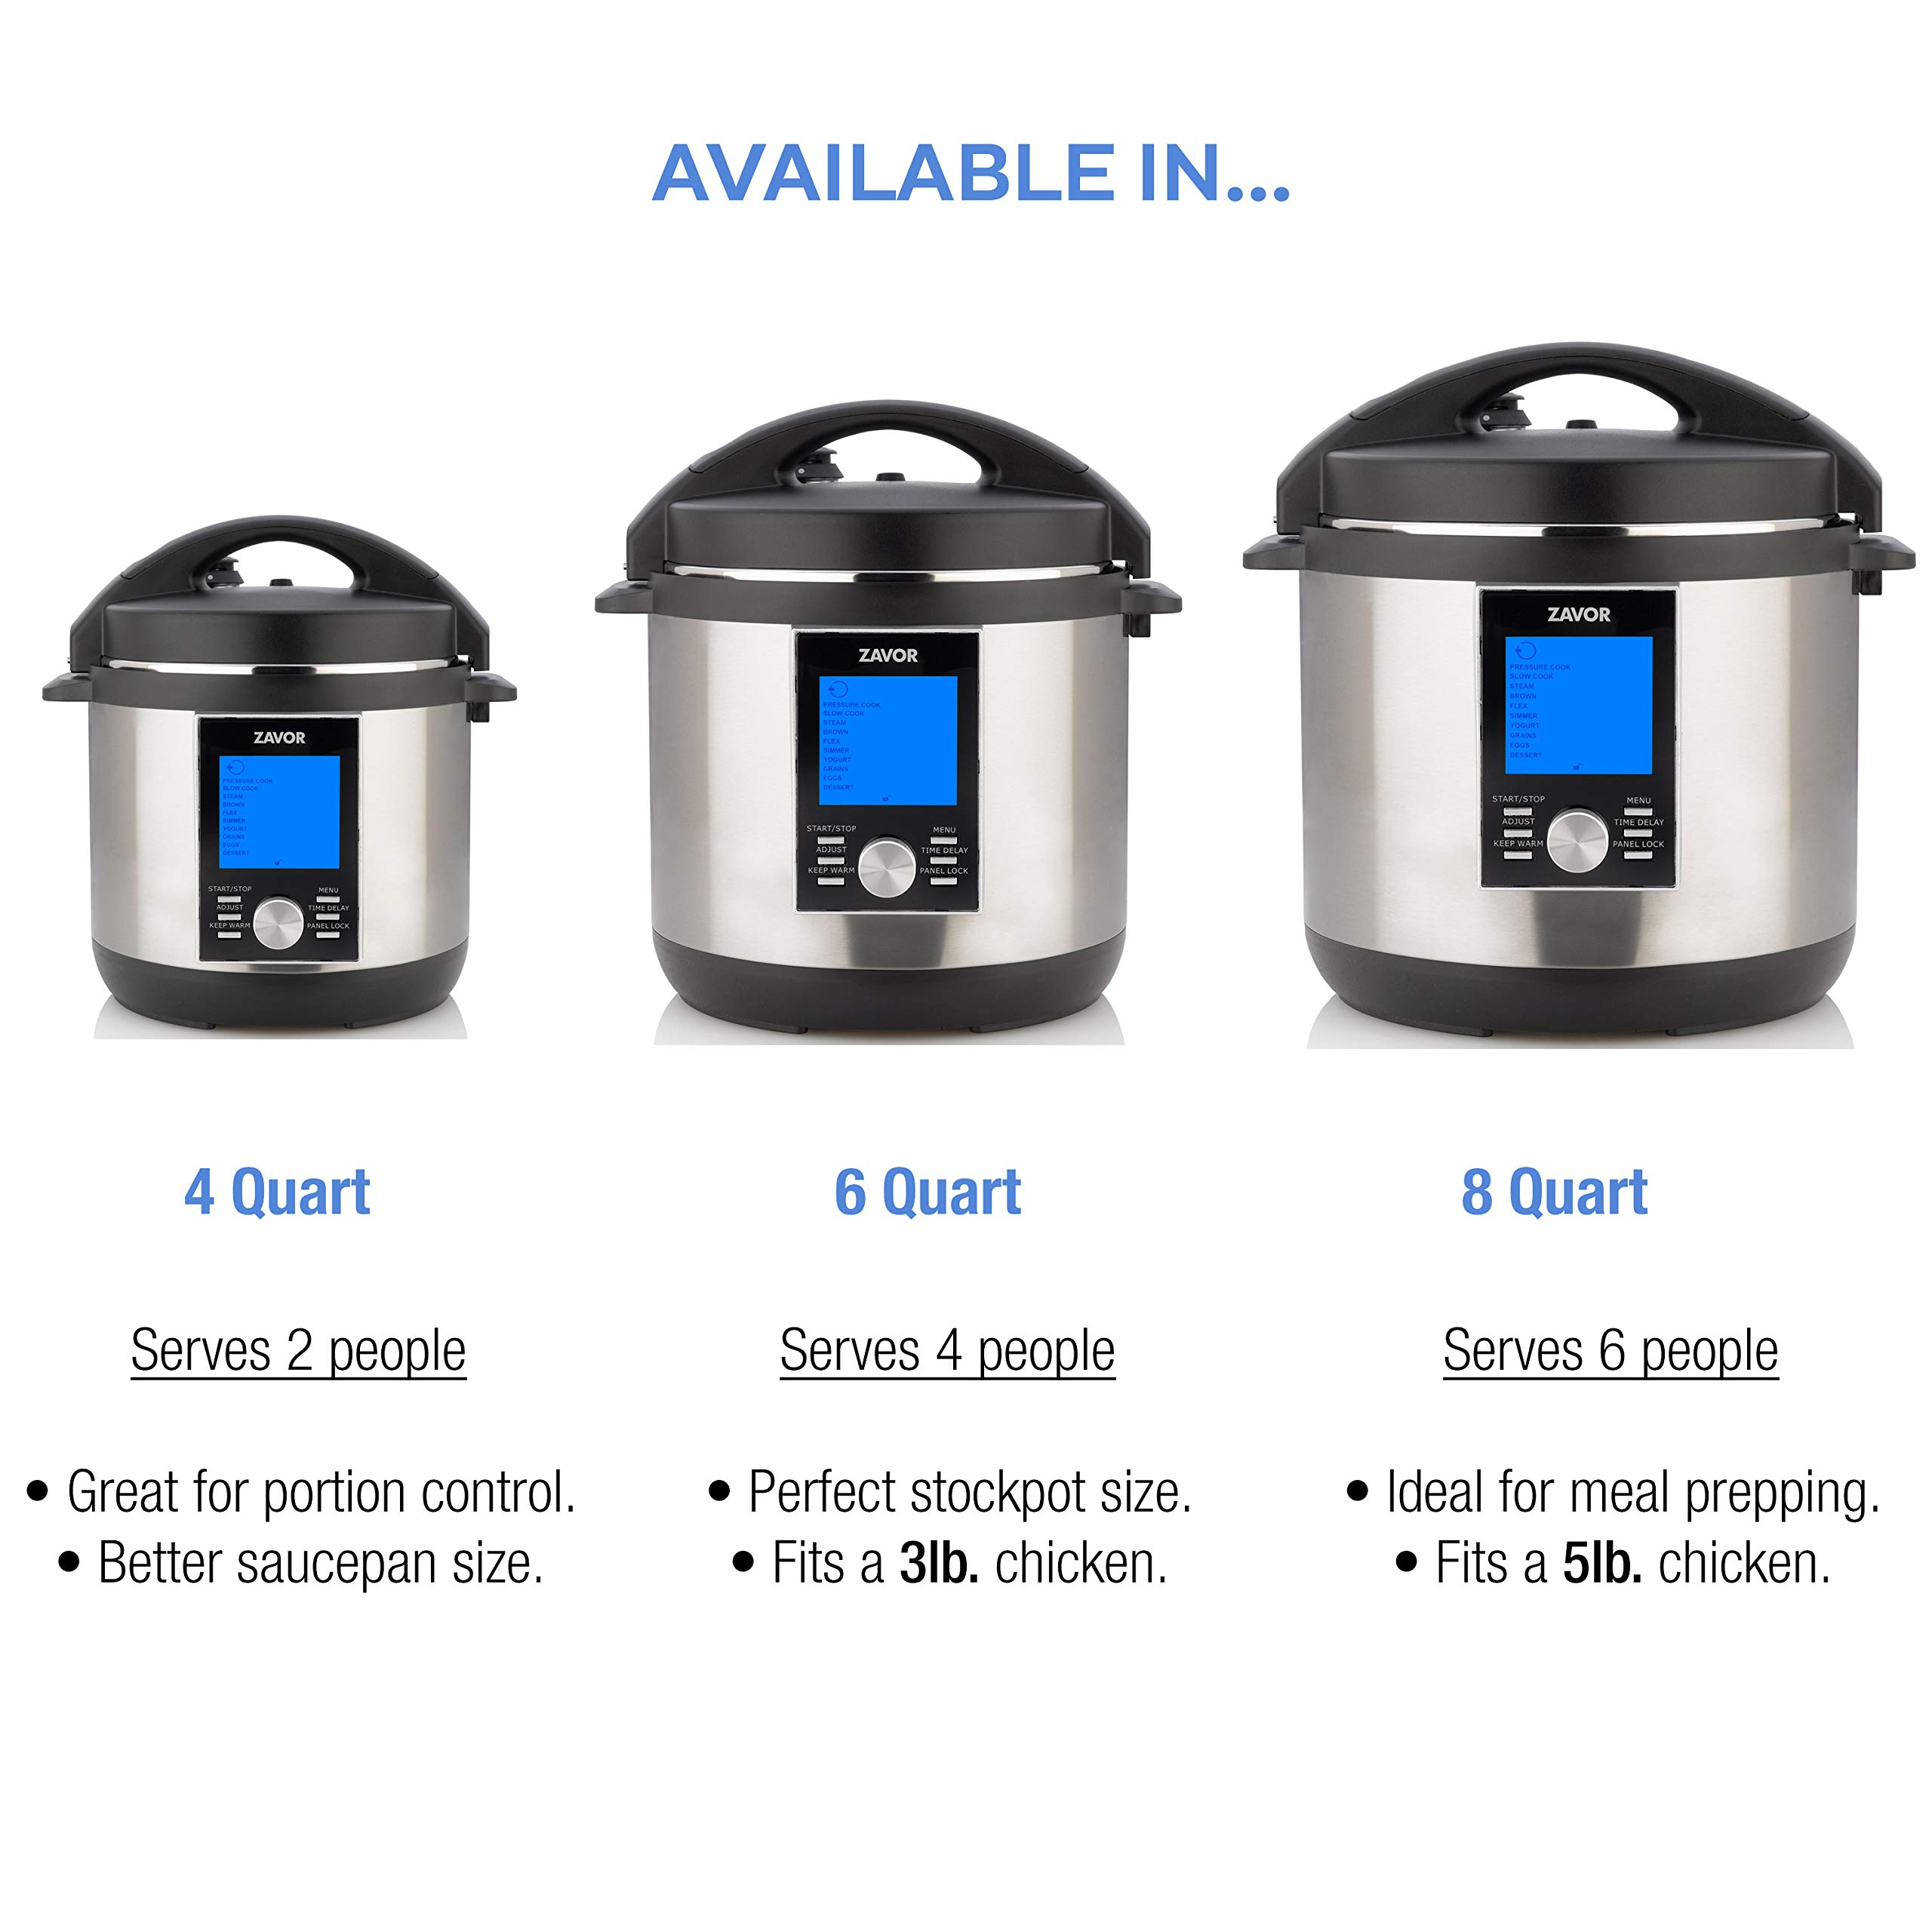 Zavor LUX LCD 8 Quart Programmable Electric Multi-Cooker: Pressure Cooker, Slow Cooker, Rice Cooker, Yogurt Maker, Steamer and more - Stainless Steel (ZSELL03) by ZAVOR (Image #6)